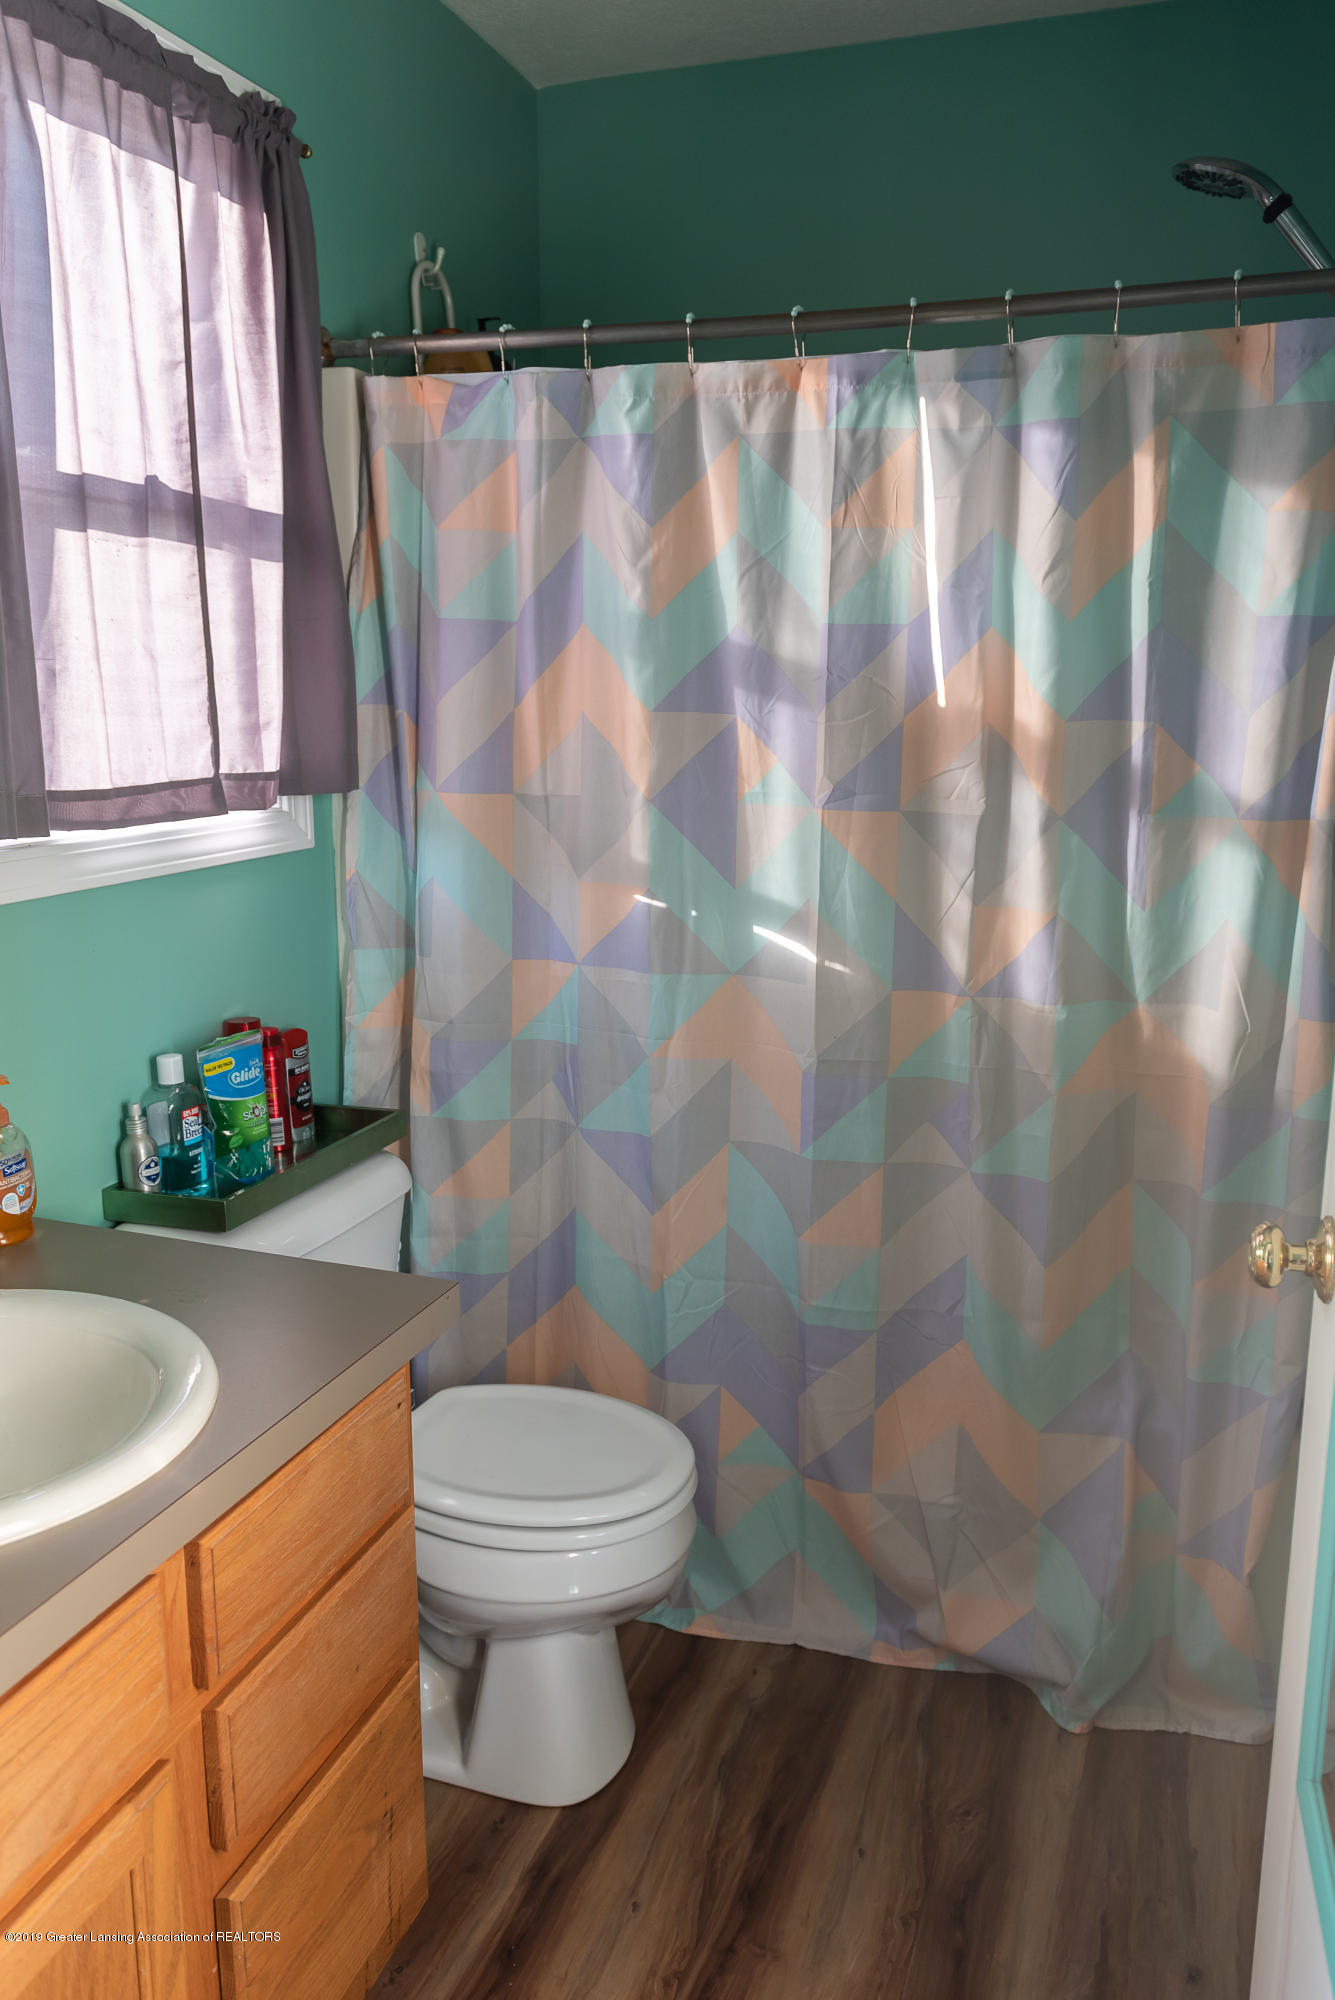 2380 S Meridian Rd - Full, private master bath - 9